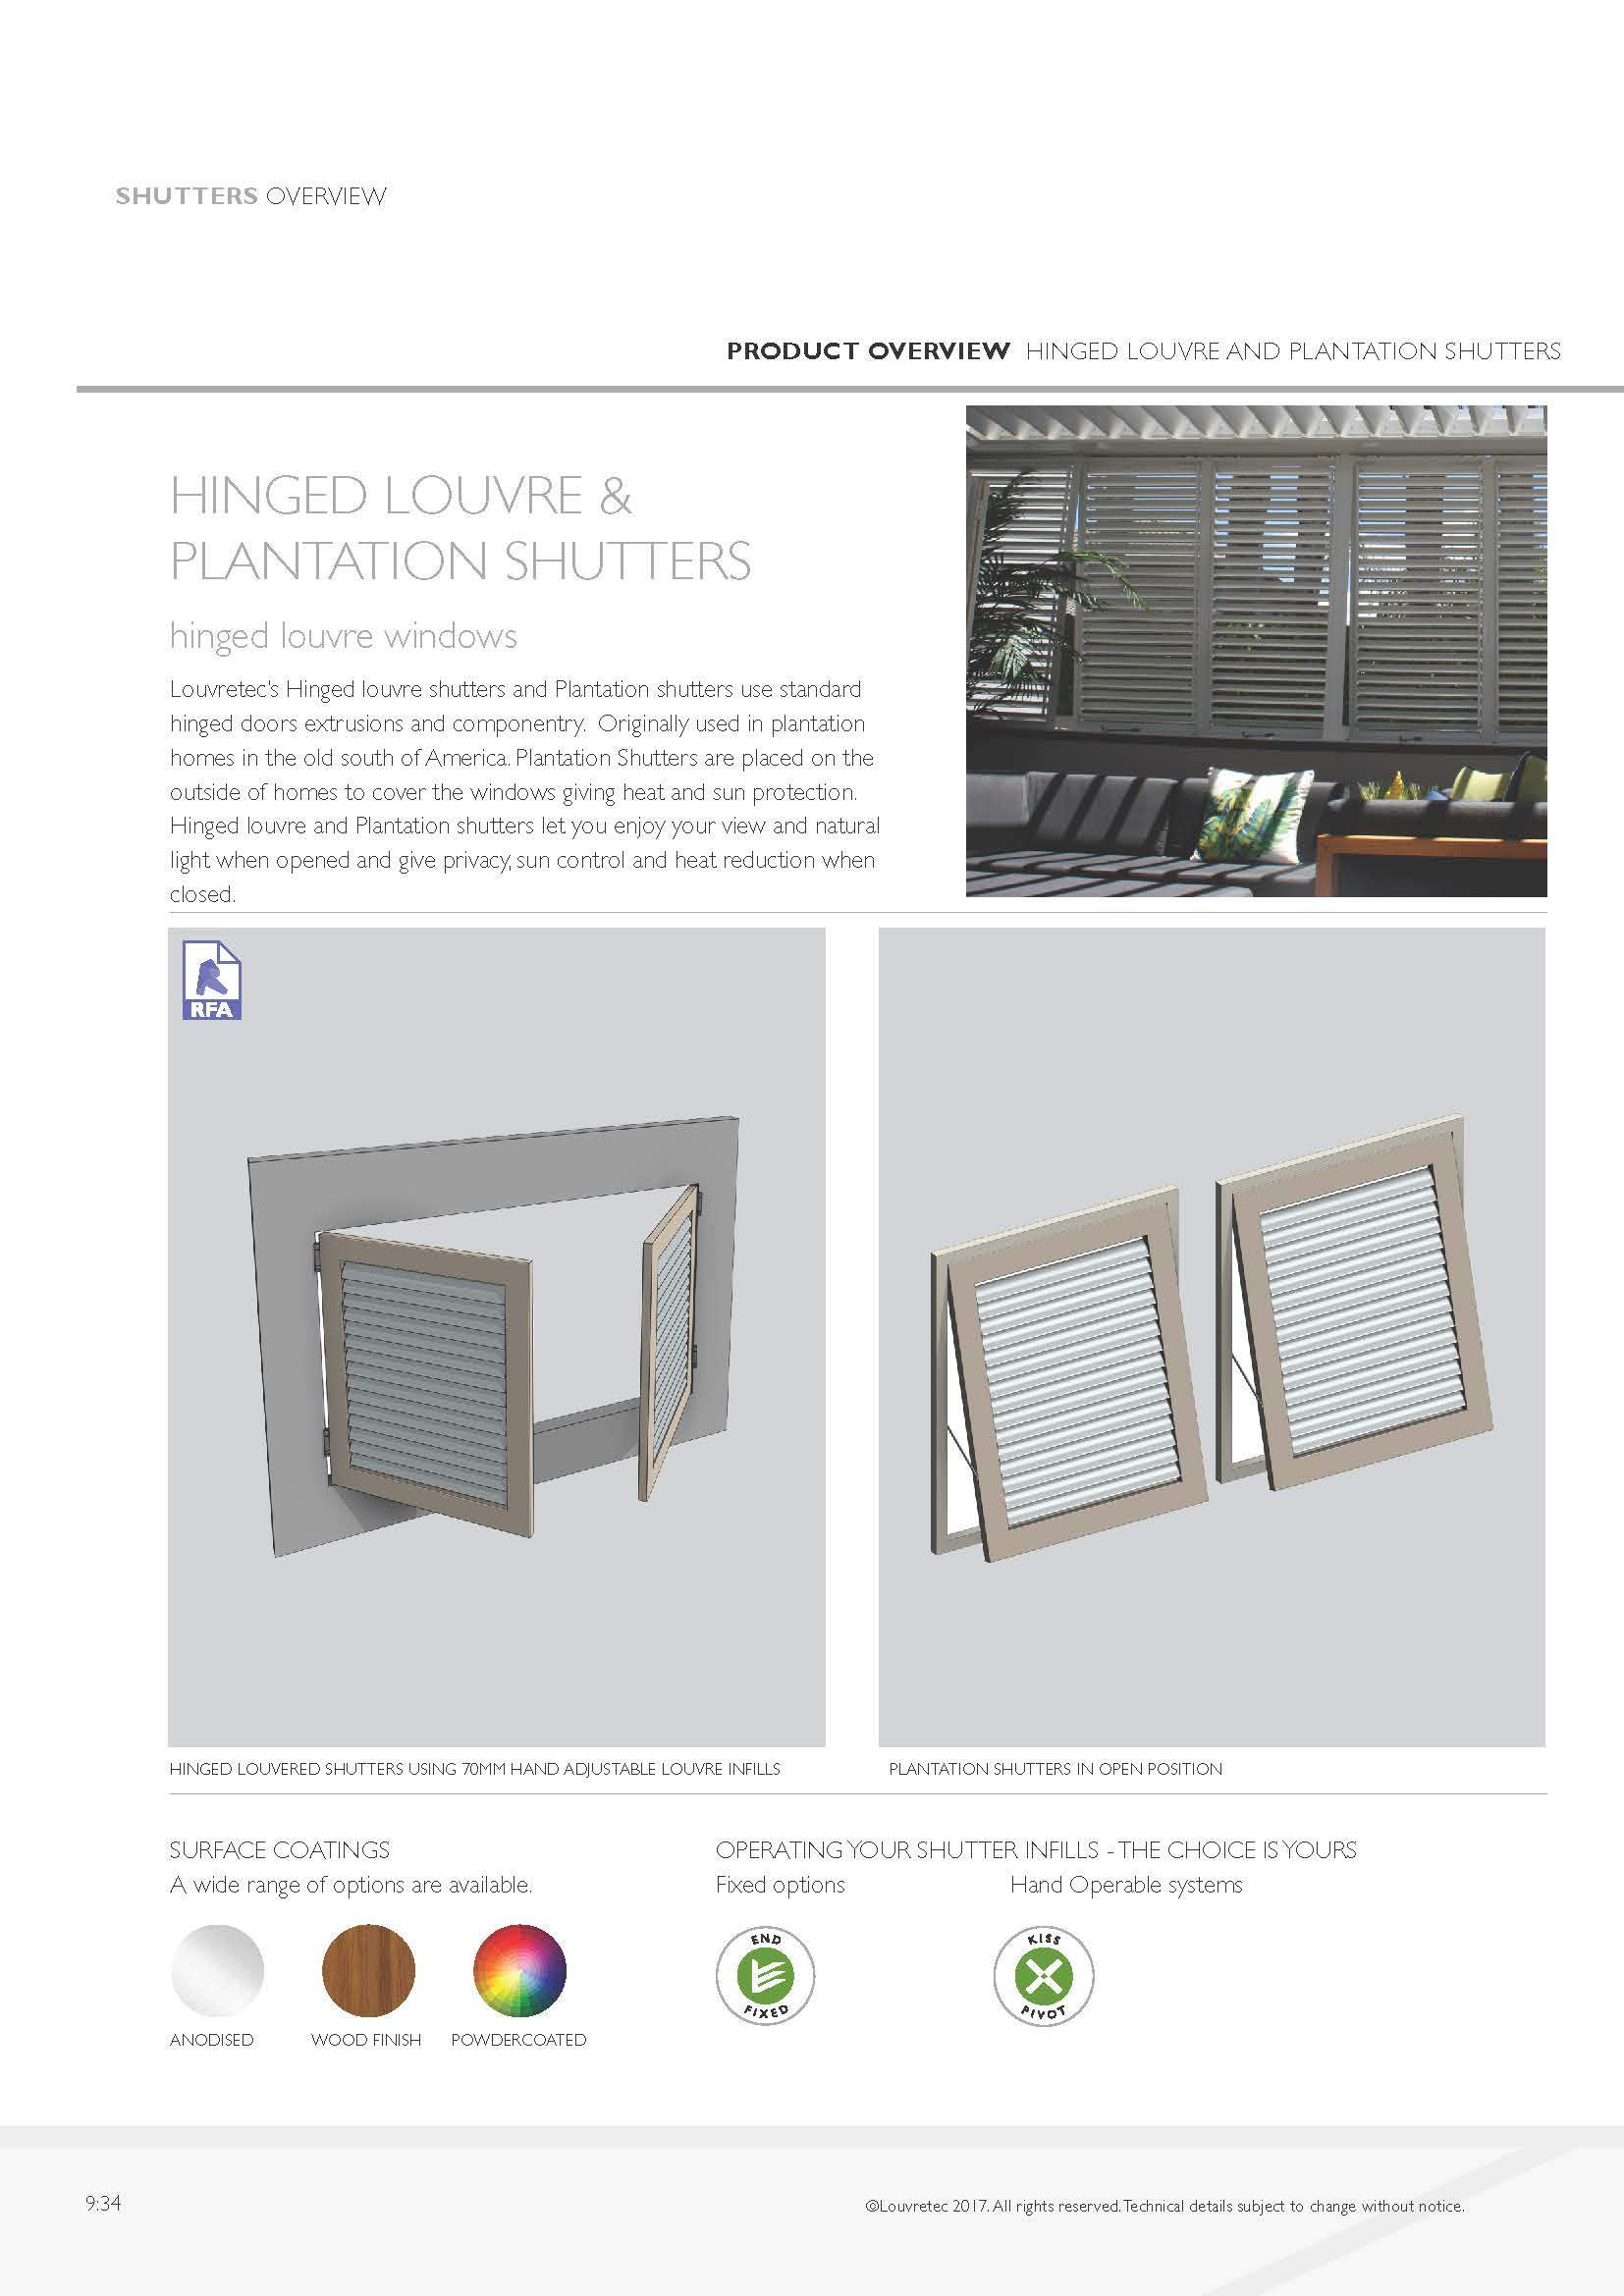 Hinged Louvre & Plantation Shutters | 9.34